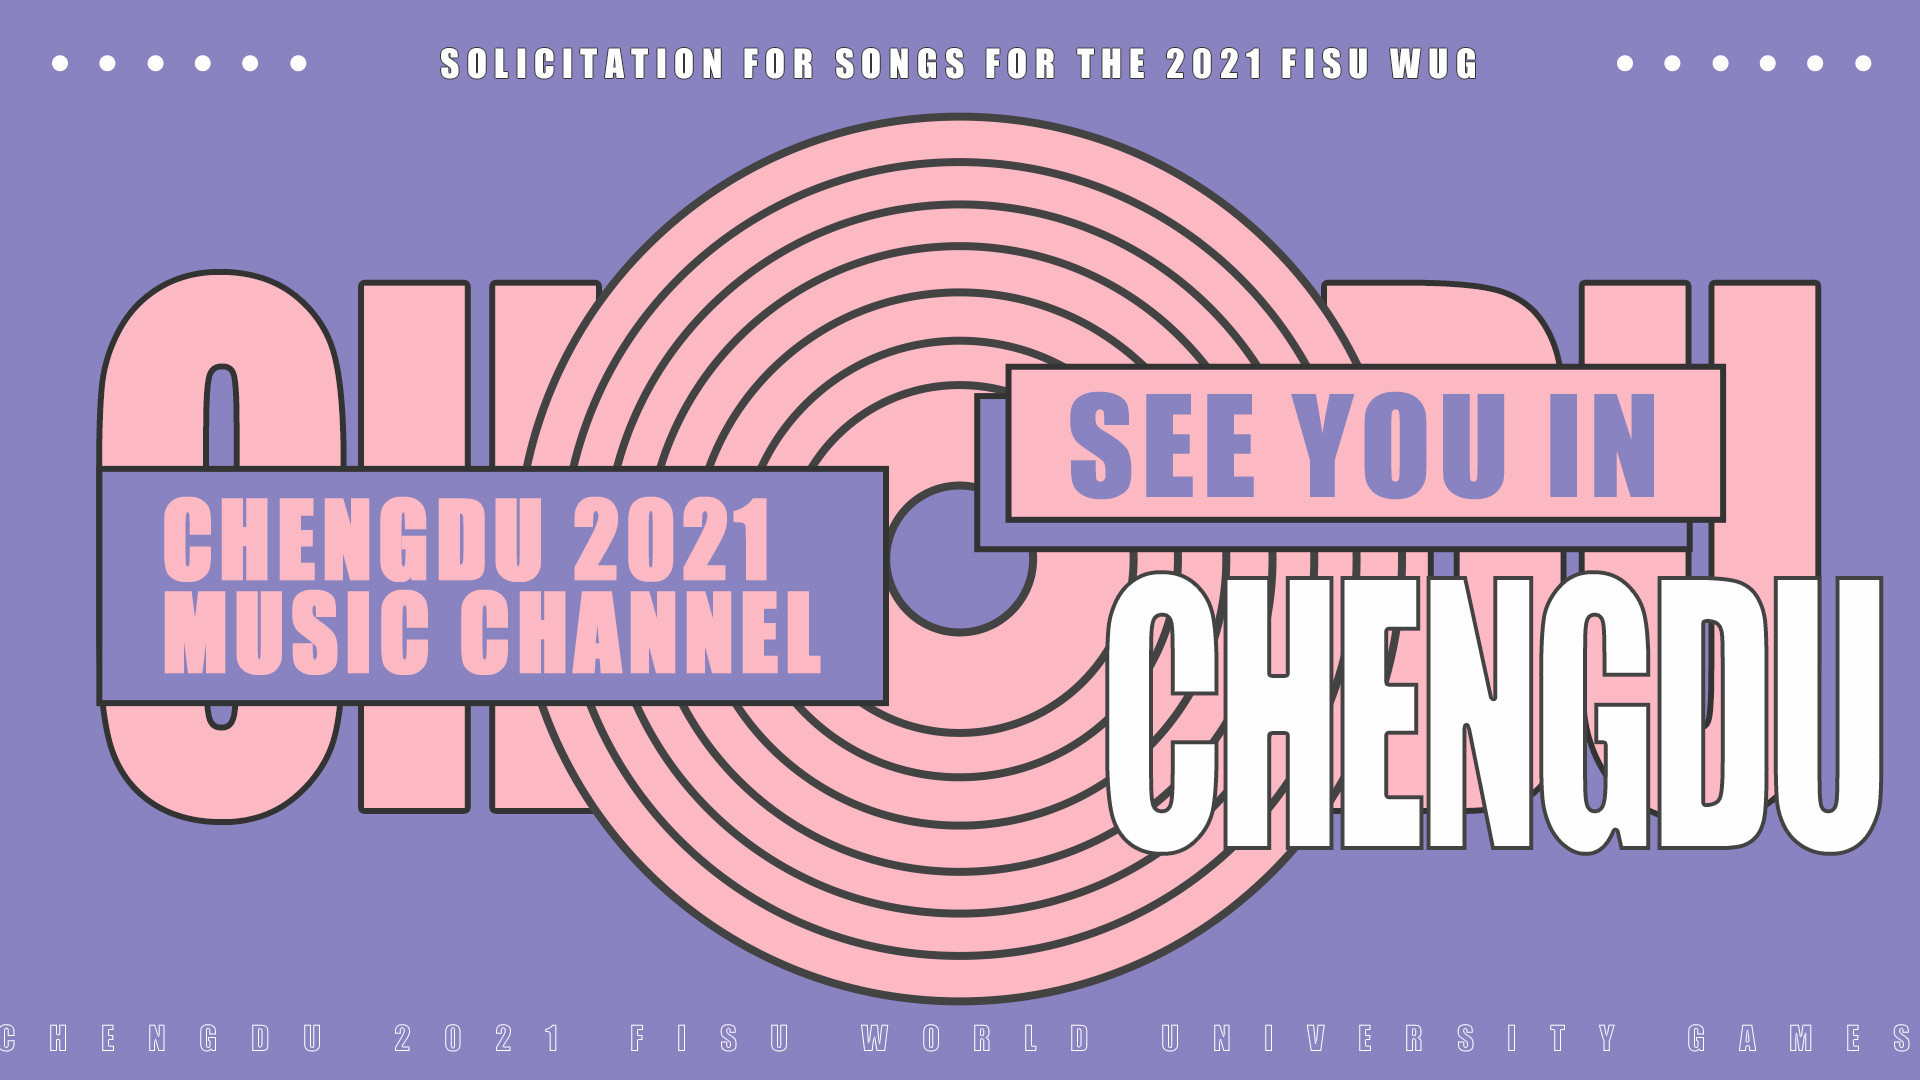 The YouTube channel will feature the entries for the official Chengdu 2021 song ©FISU